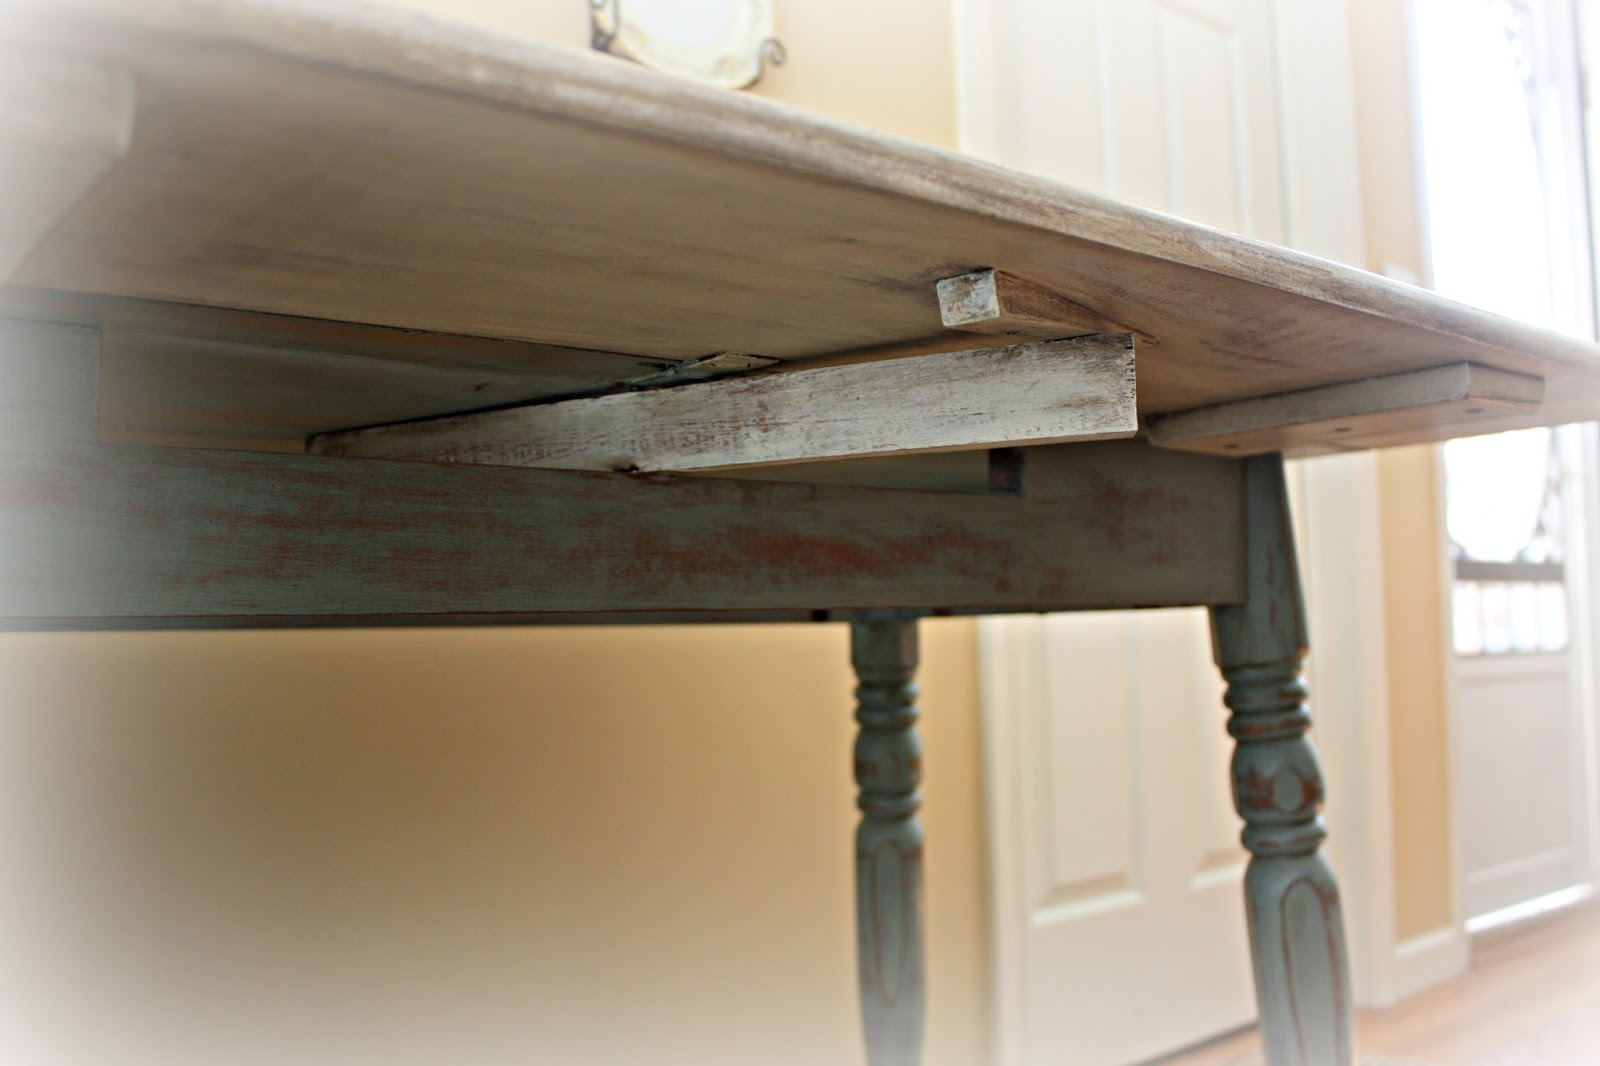 The wood support bars underneath swivel to extend the table leaves.